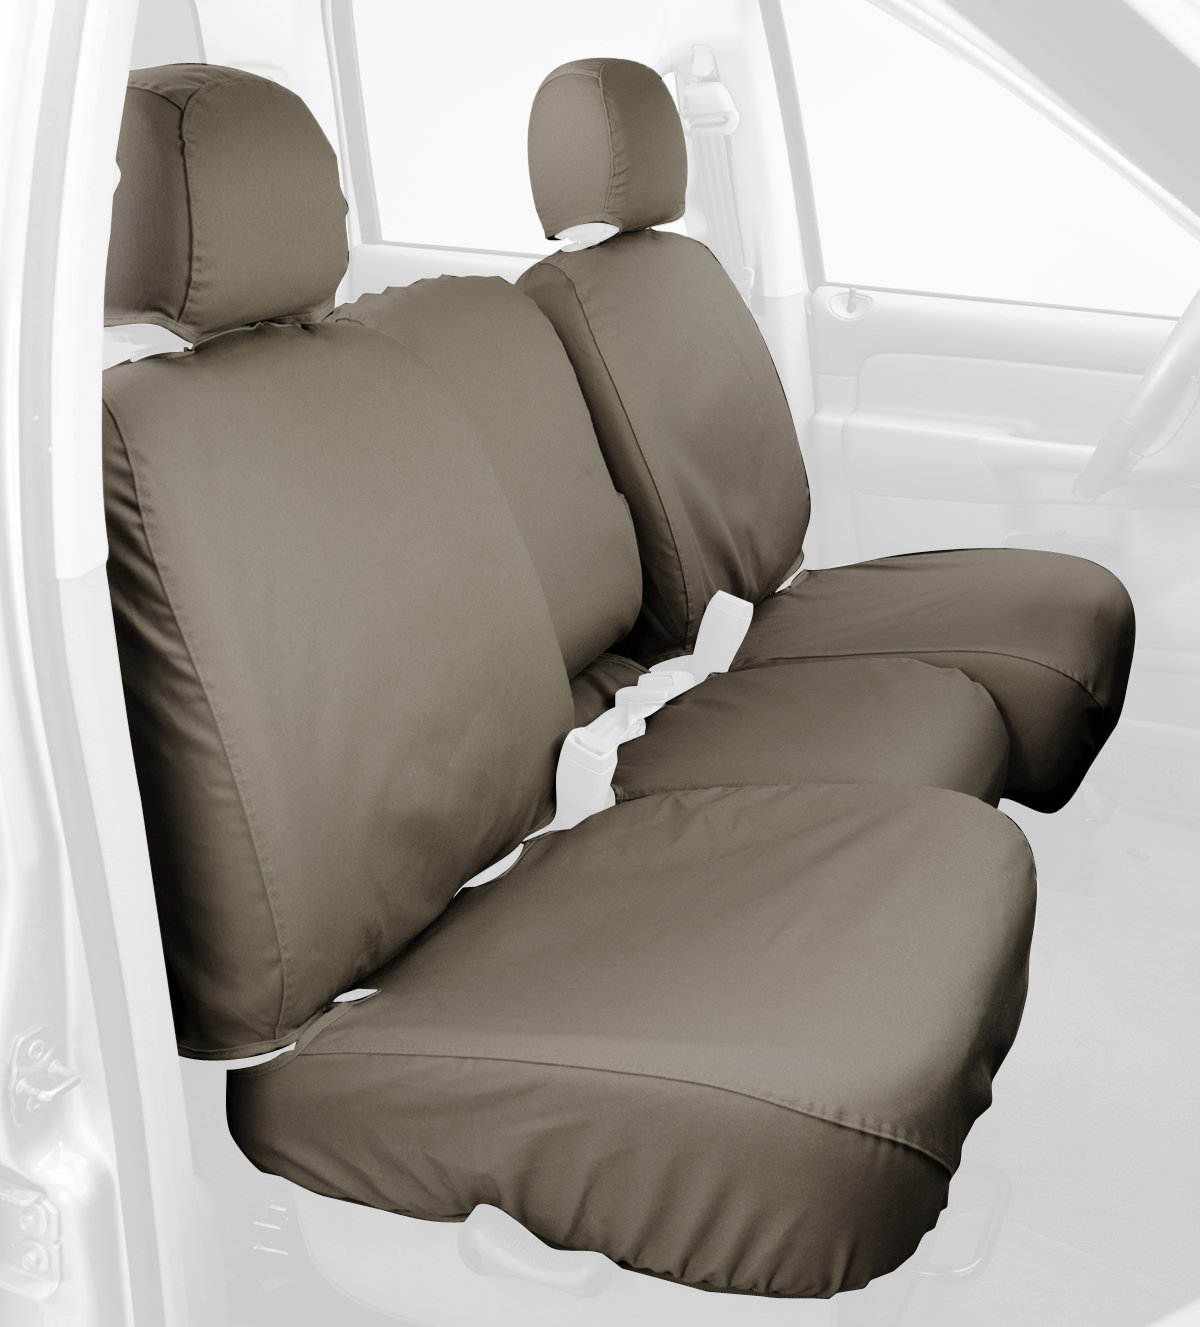 Covercraft Custom-Fit Front Bench SeatSaver Seat Covers - Polycotton Fabric, Sand